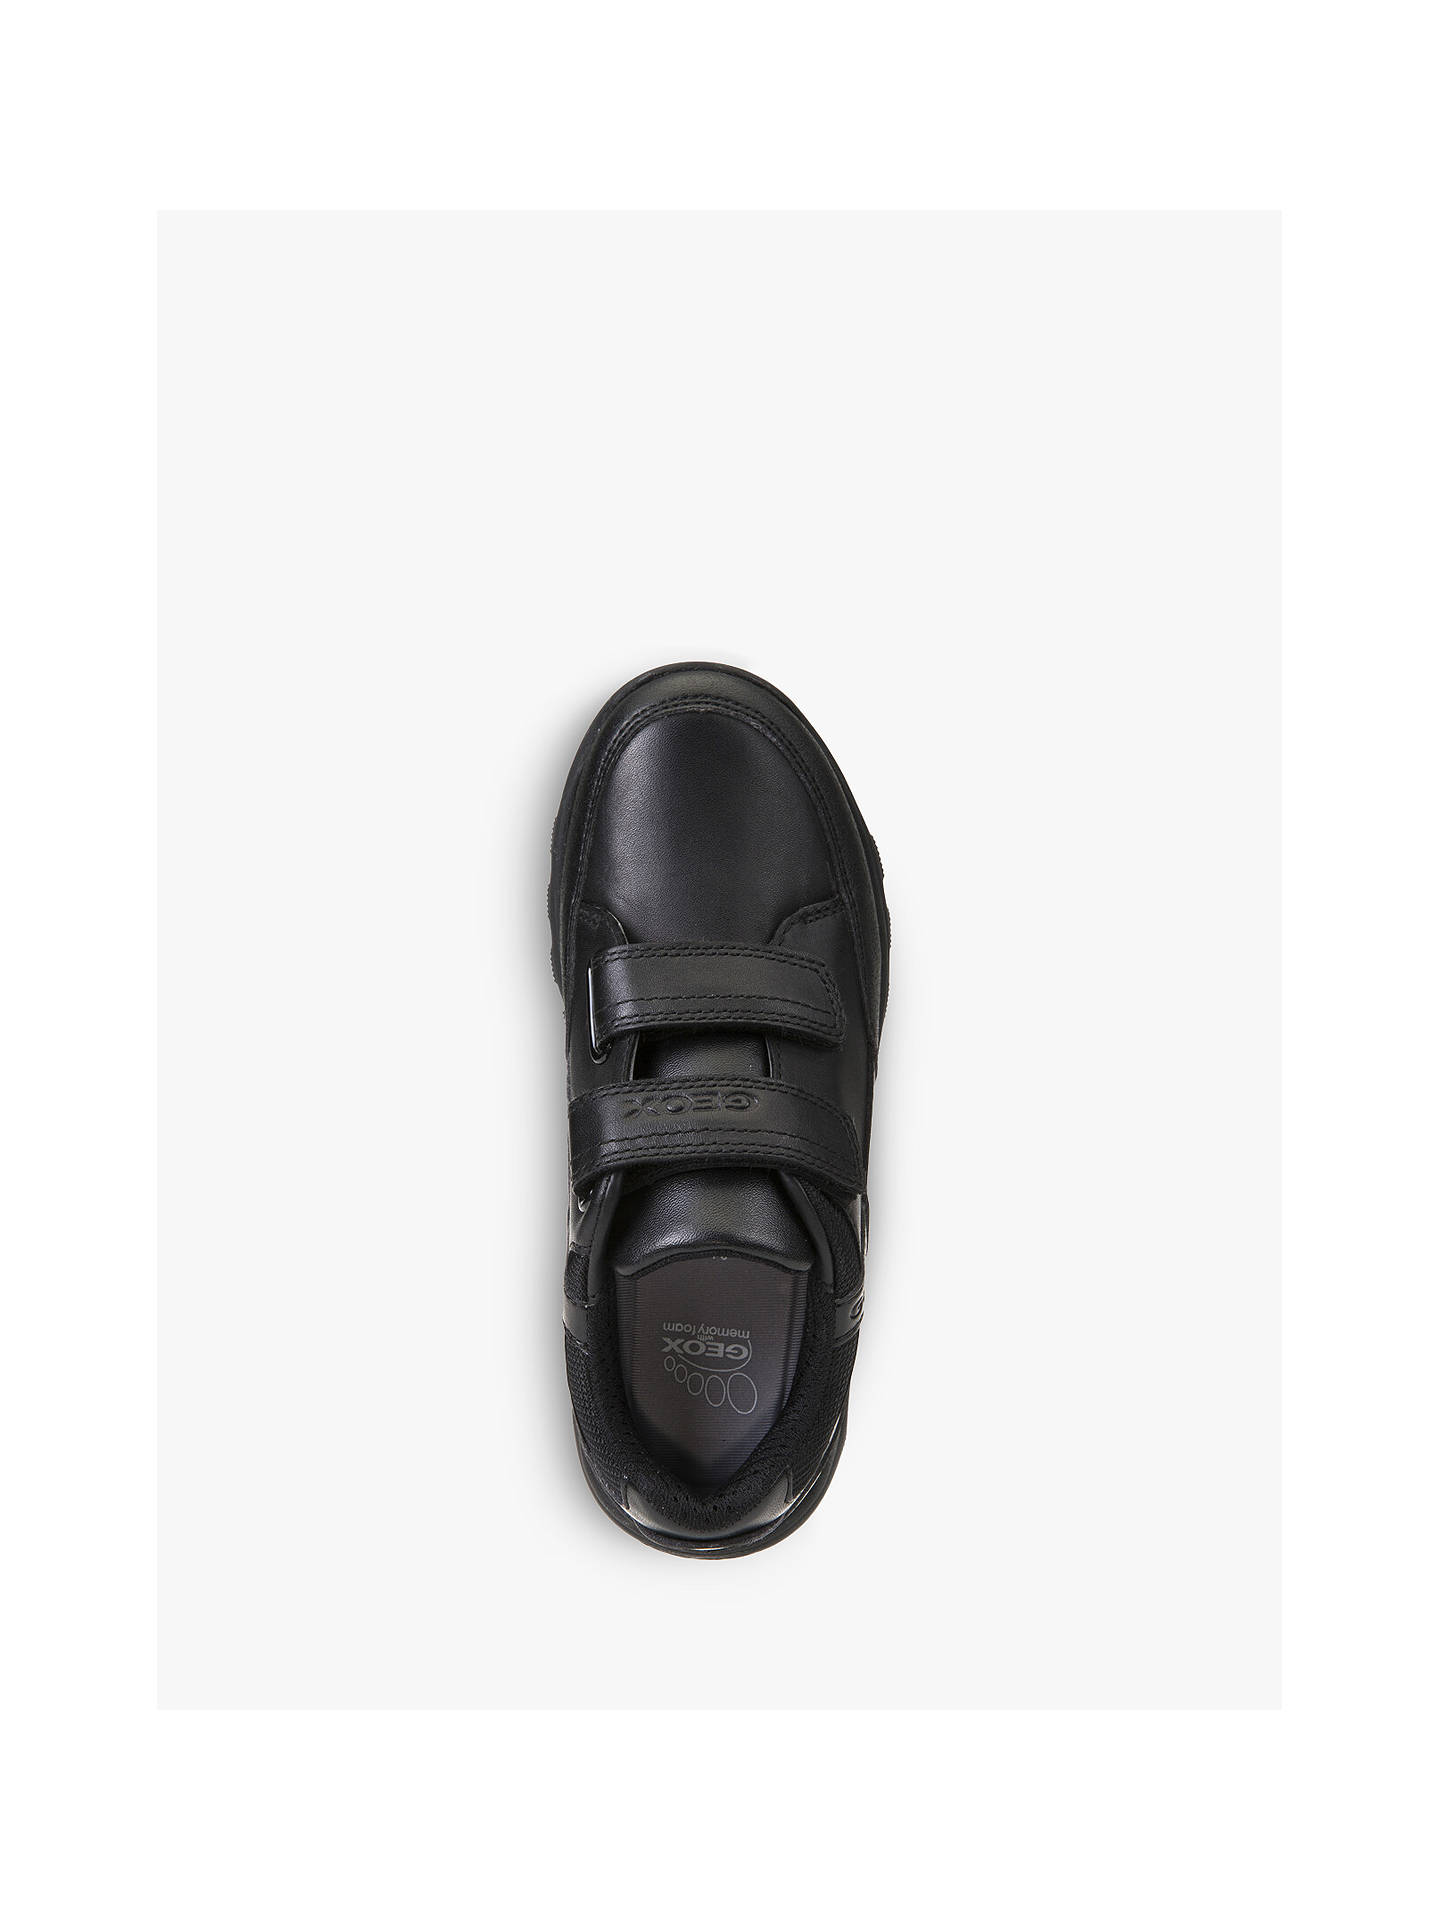 Geox Children's Xunday Shoes, Black at John Lewis & Partners